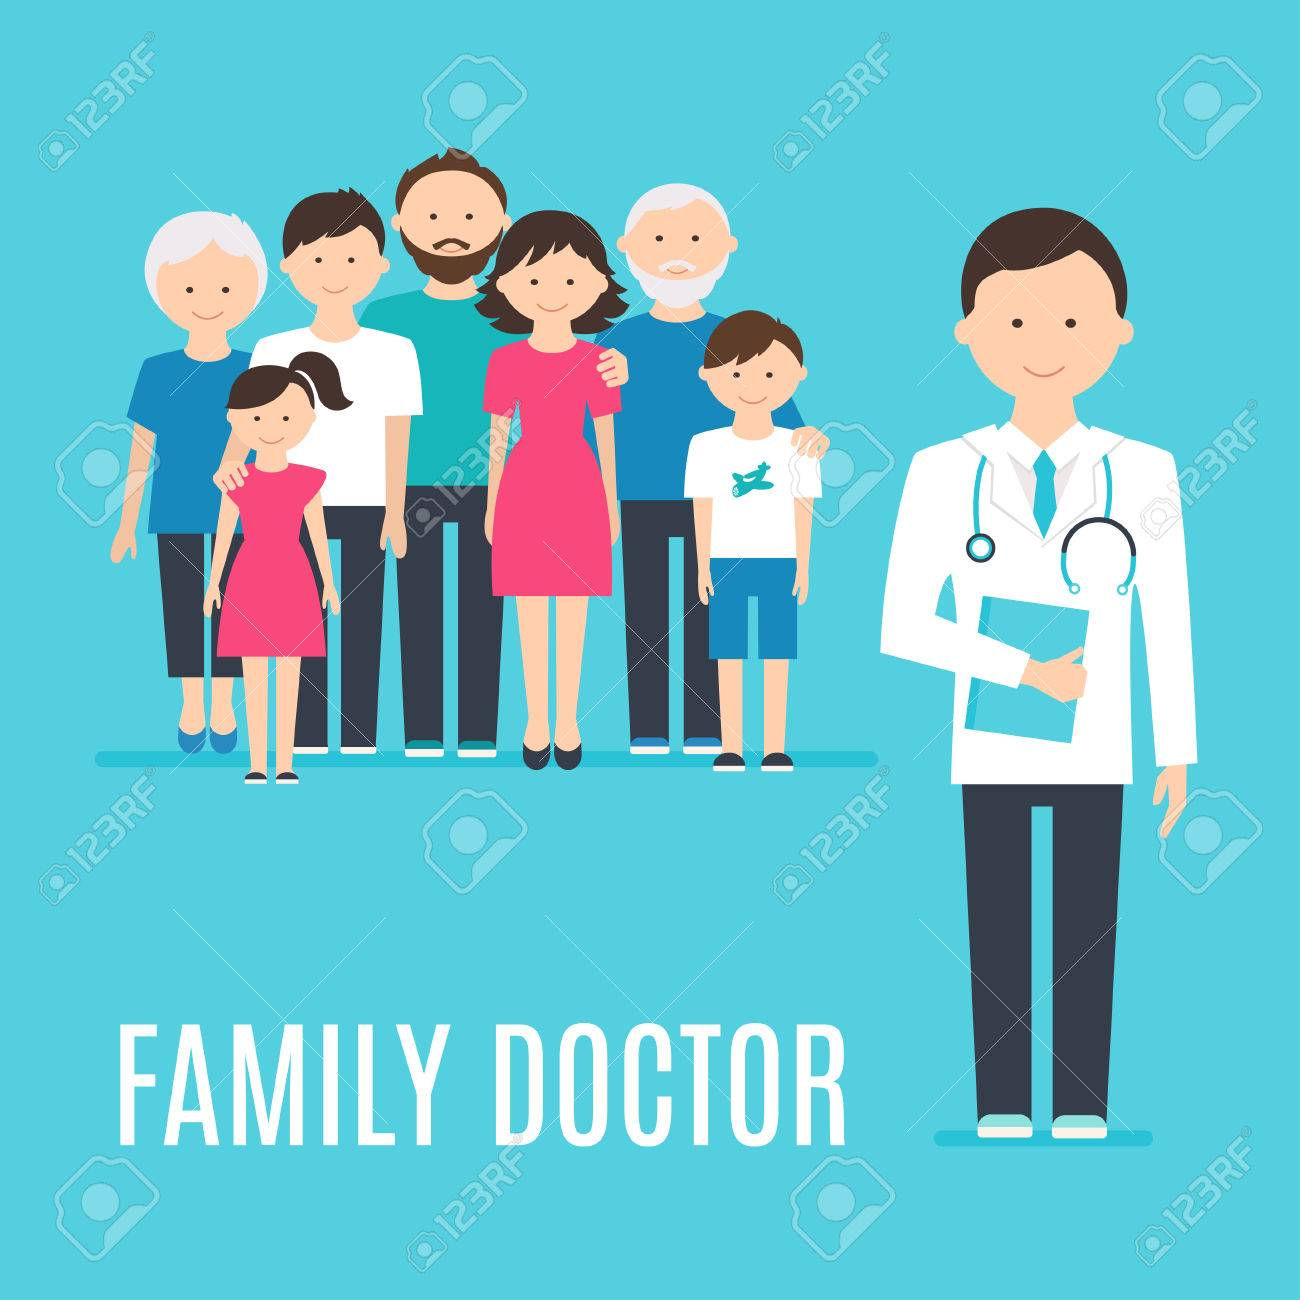 Extended Family and Medical Doctor or Physician. Illustration - 56726695